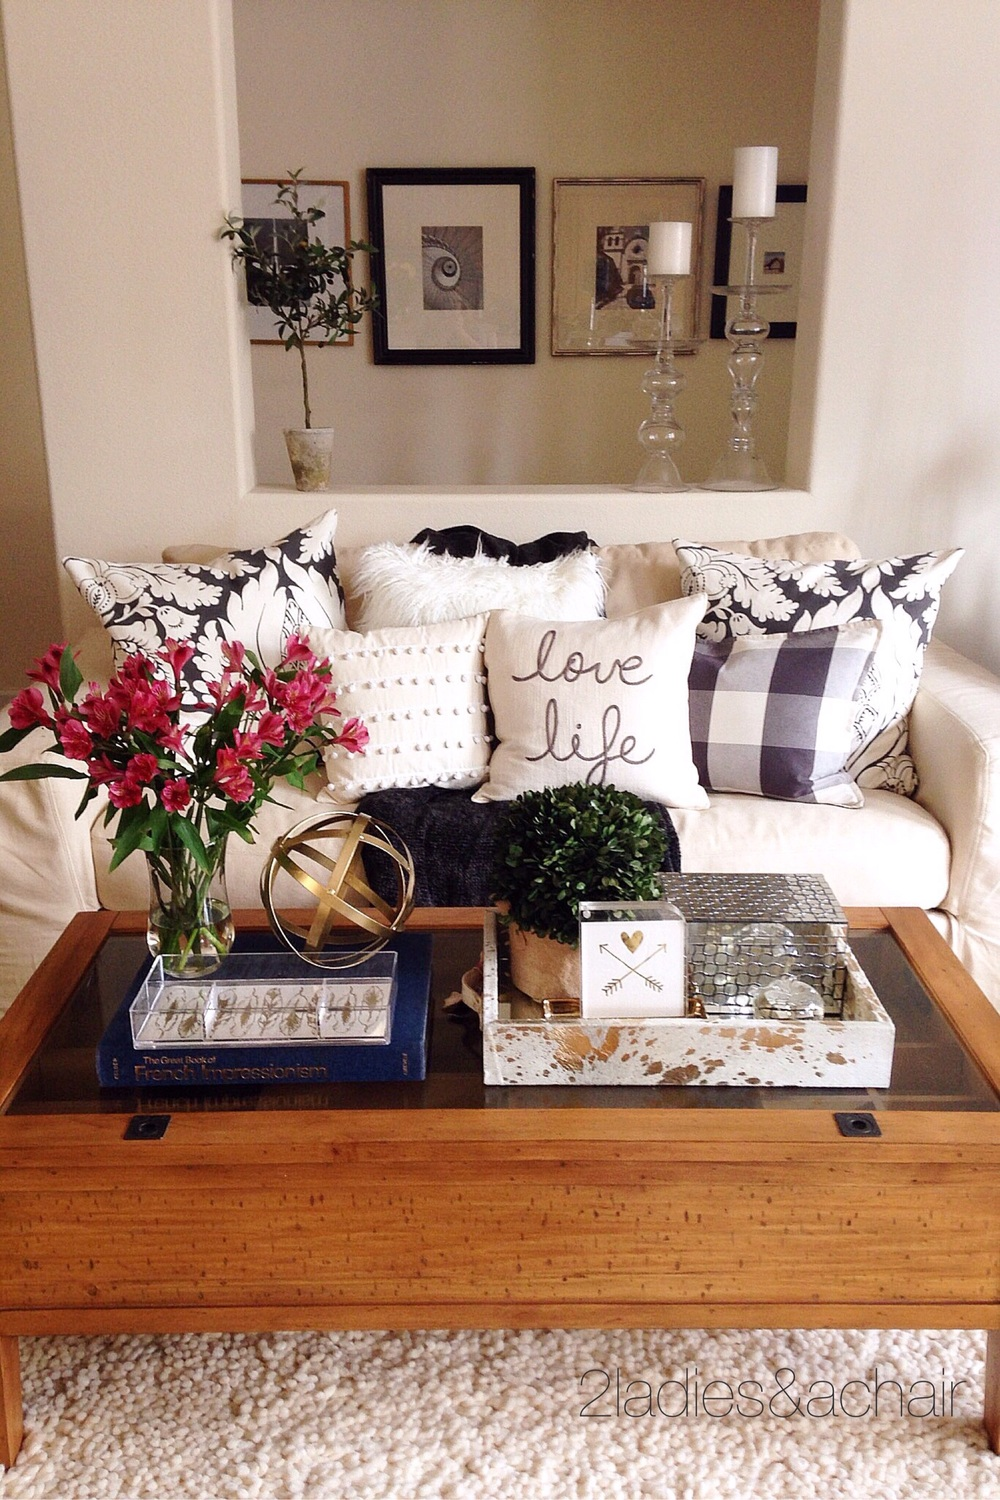 decorating your coffee table — 2 ladies & a chair